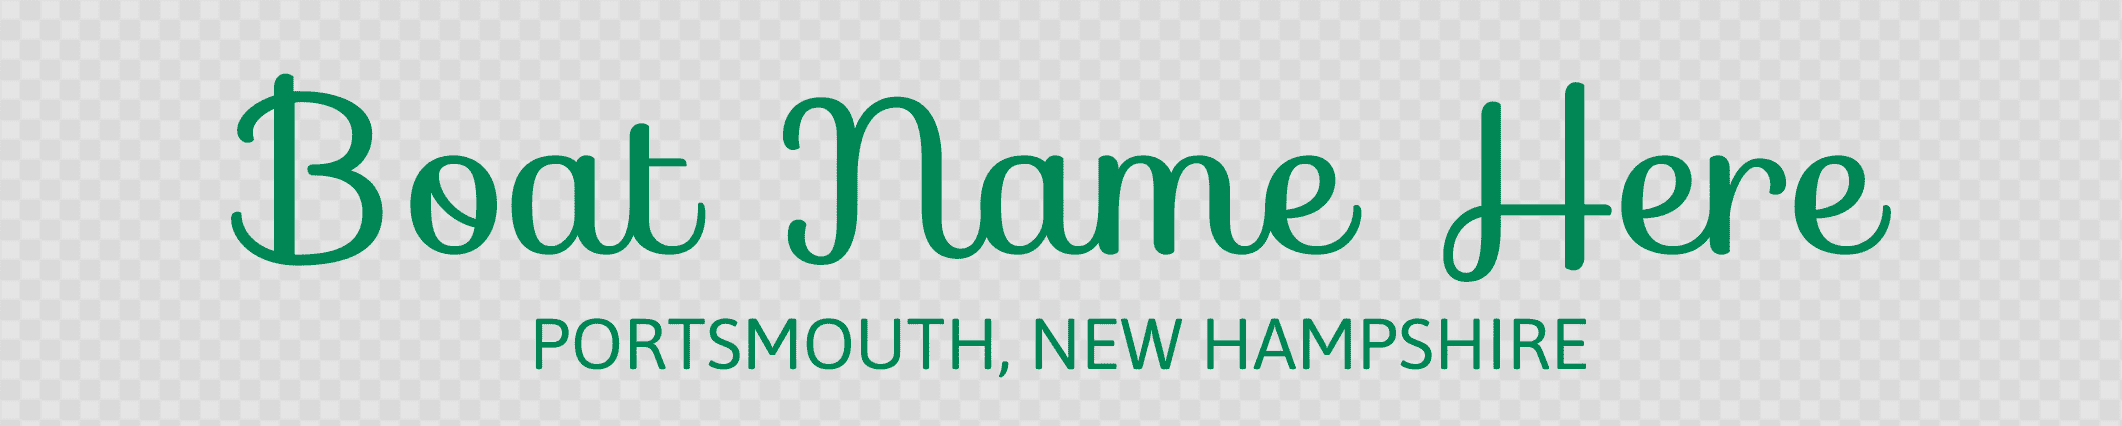 New Hampshire Hailing Port Template